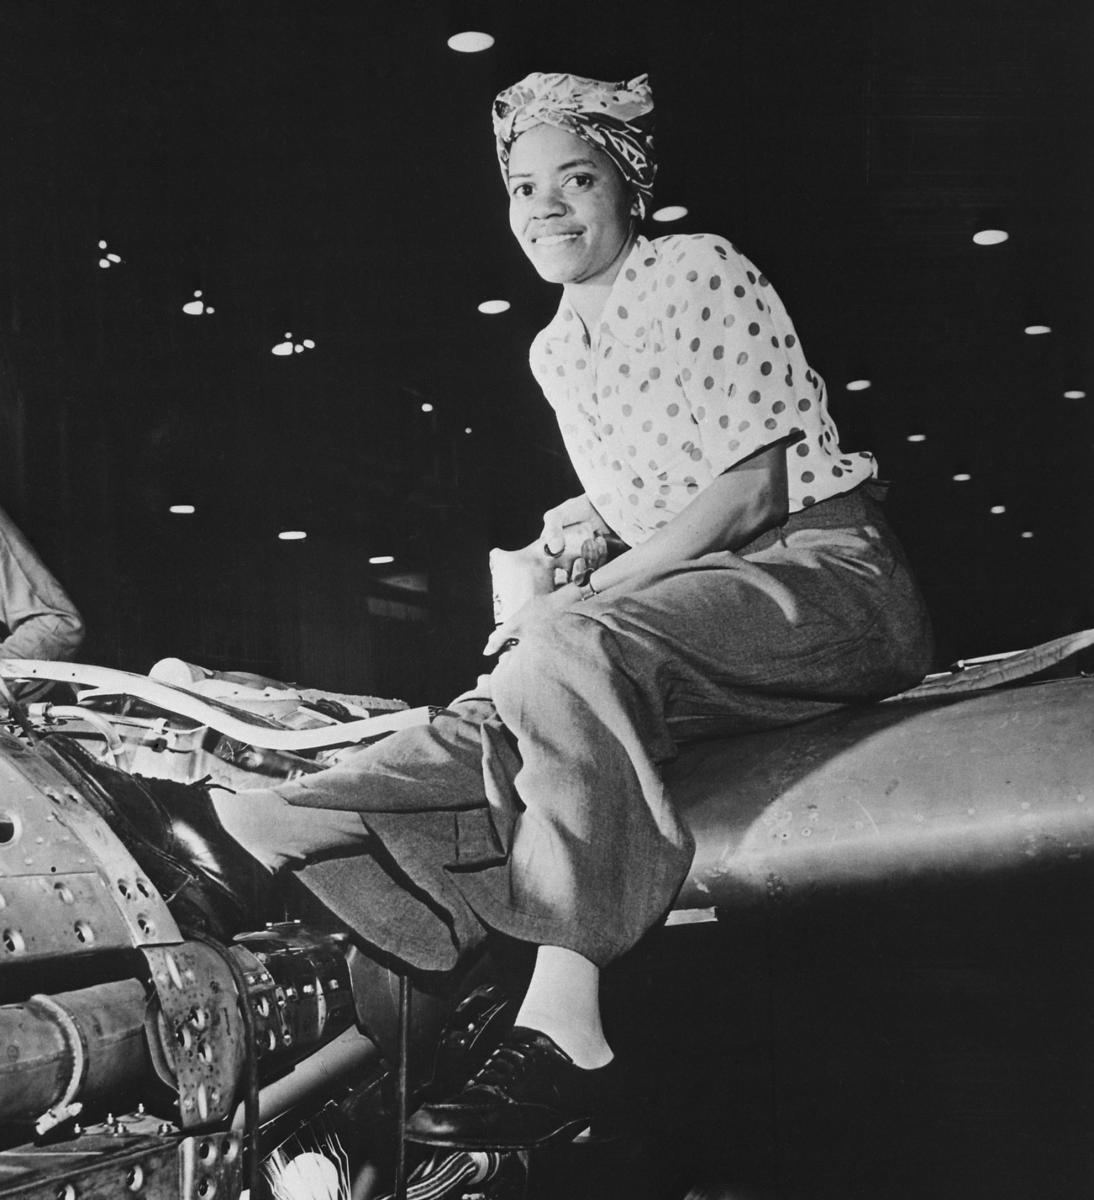 Riveter at Lockheed Aircraft Company